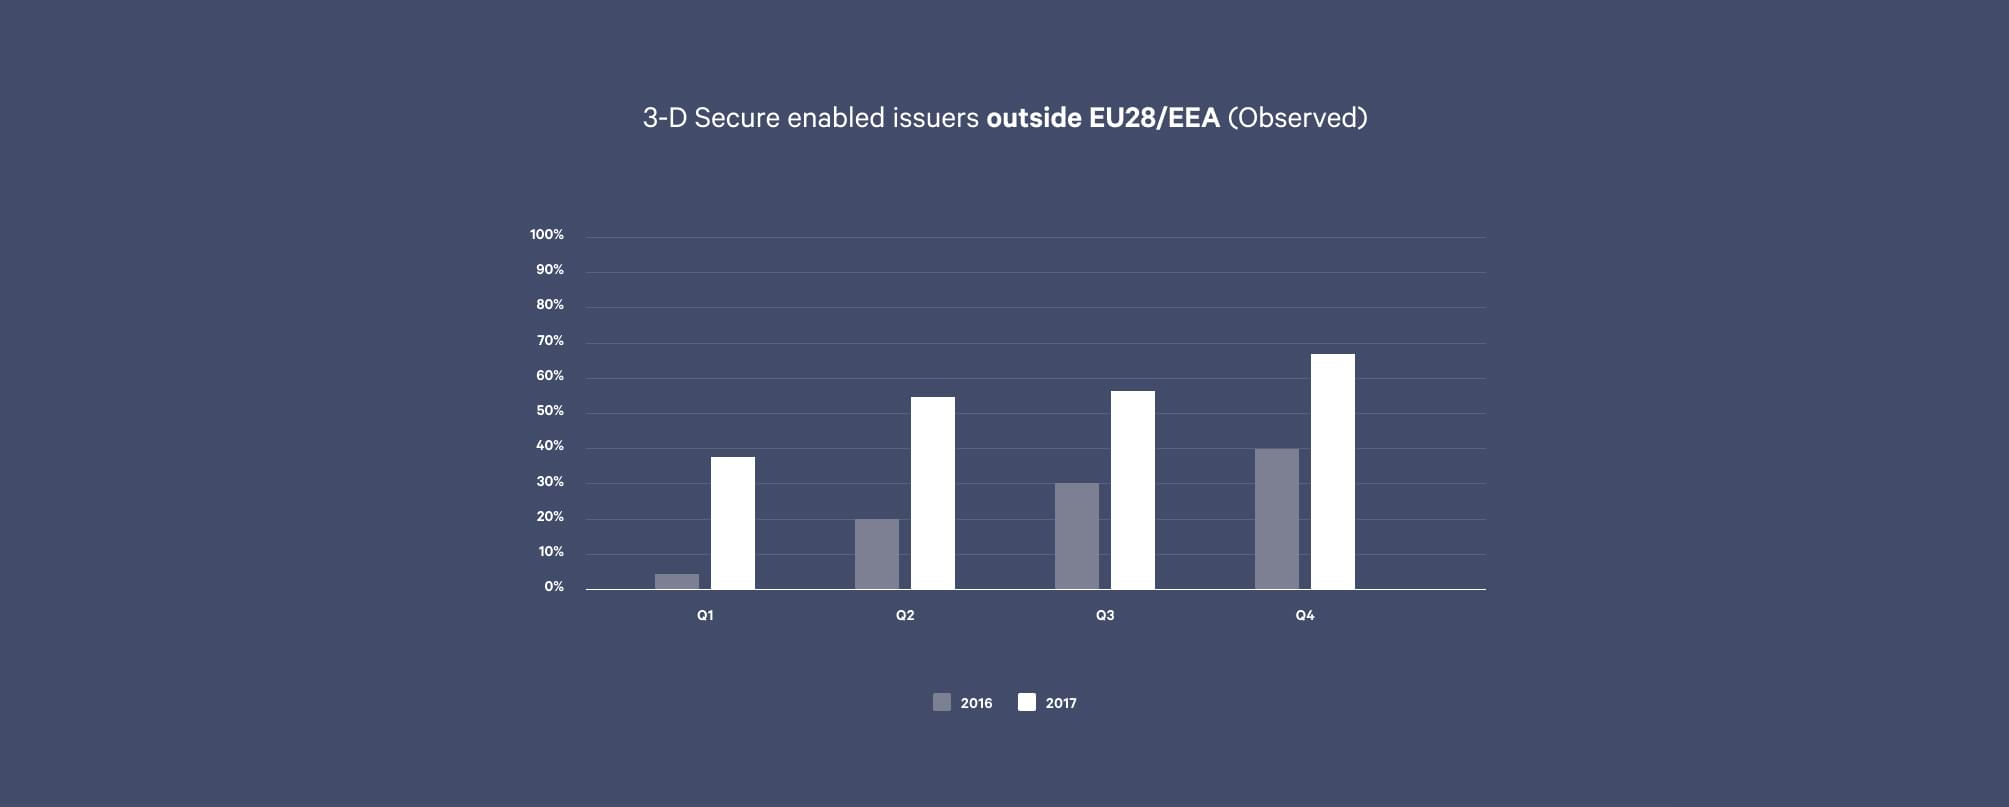 3-D Secure enabled issuers outside EU28/EEA (Observed)